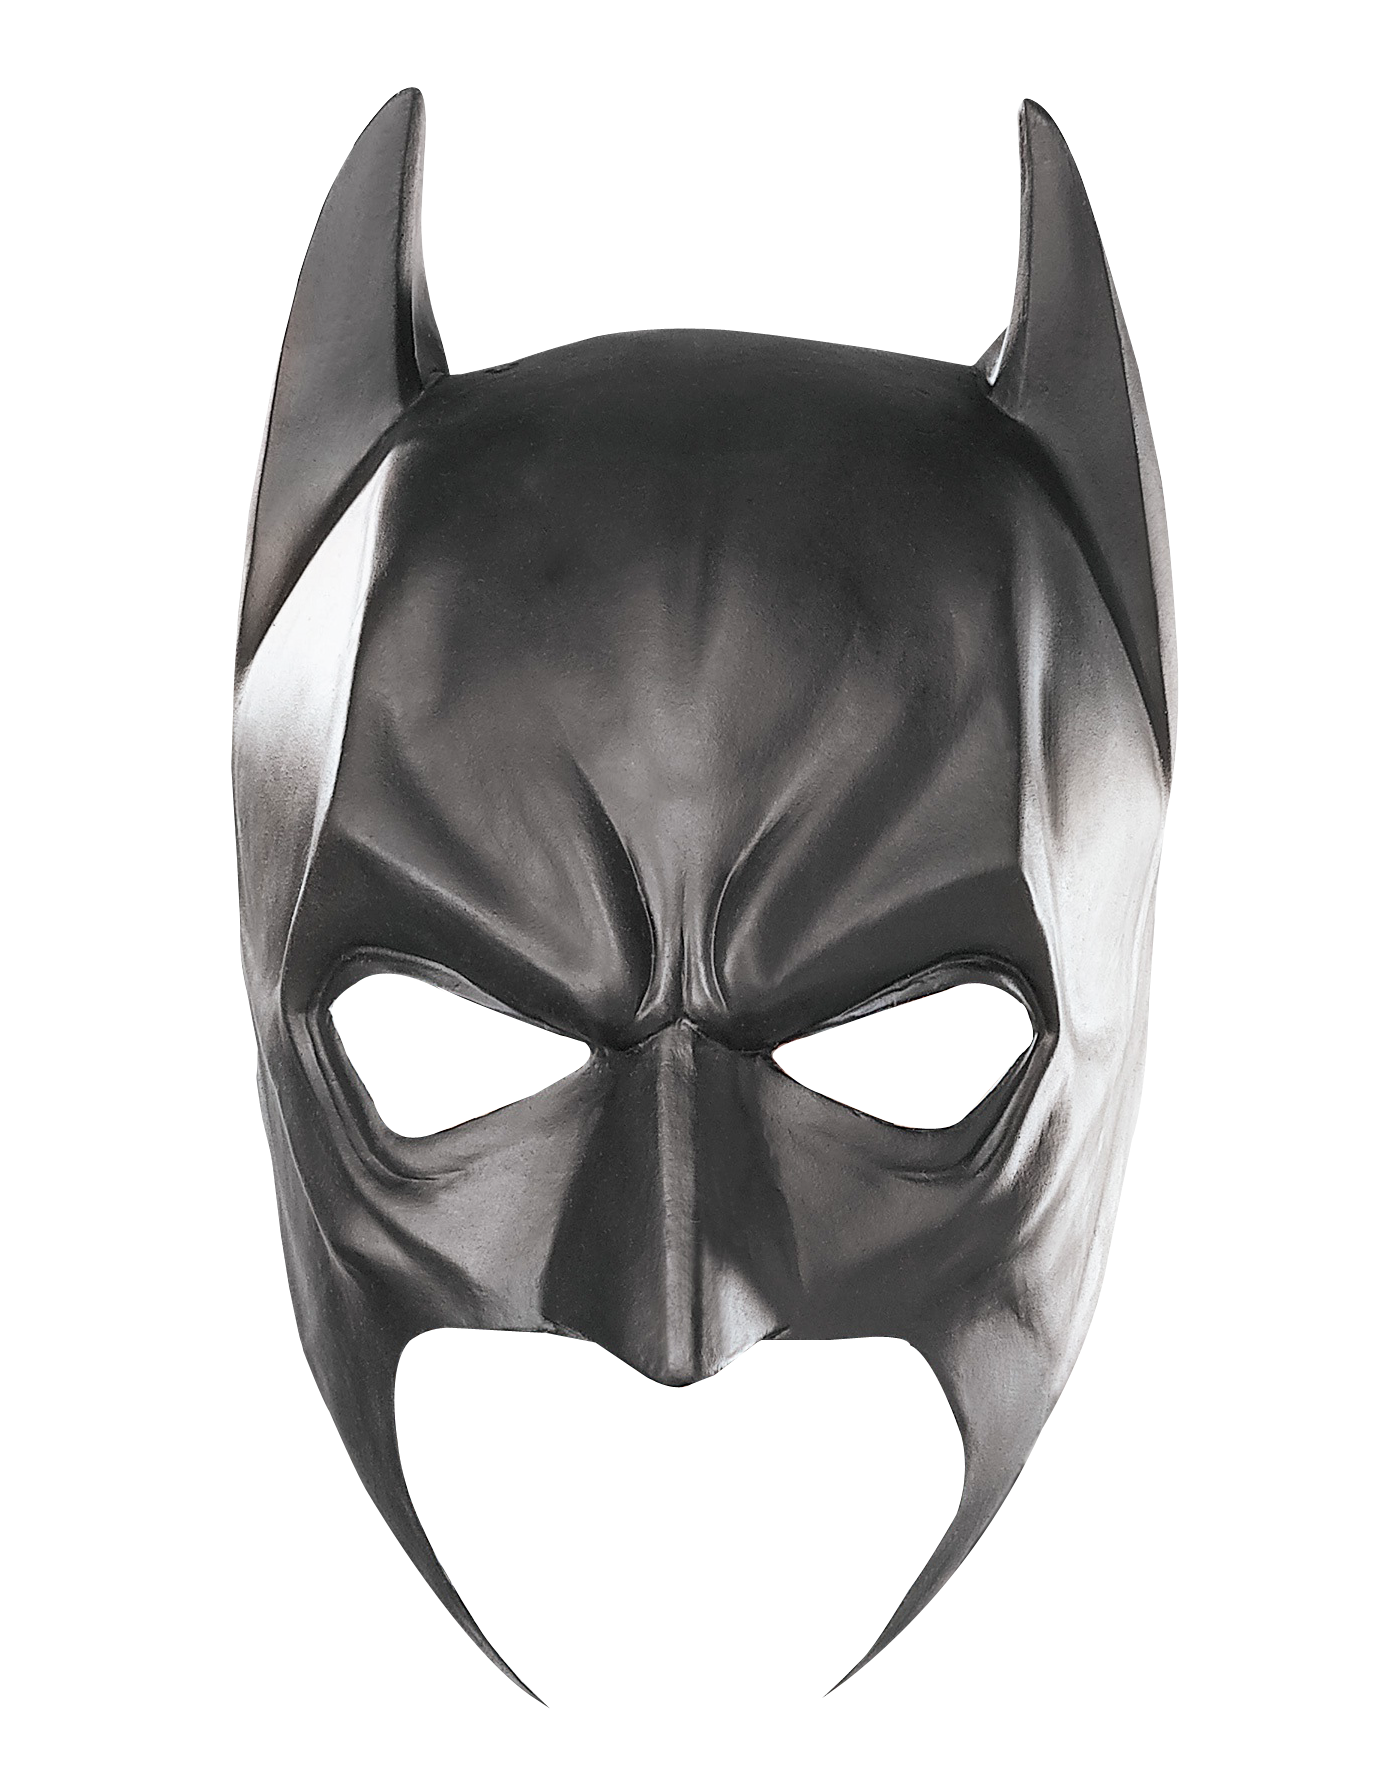 Batman Mask PNG Transparent Image - Batman PNG